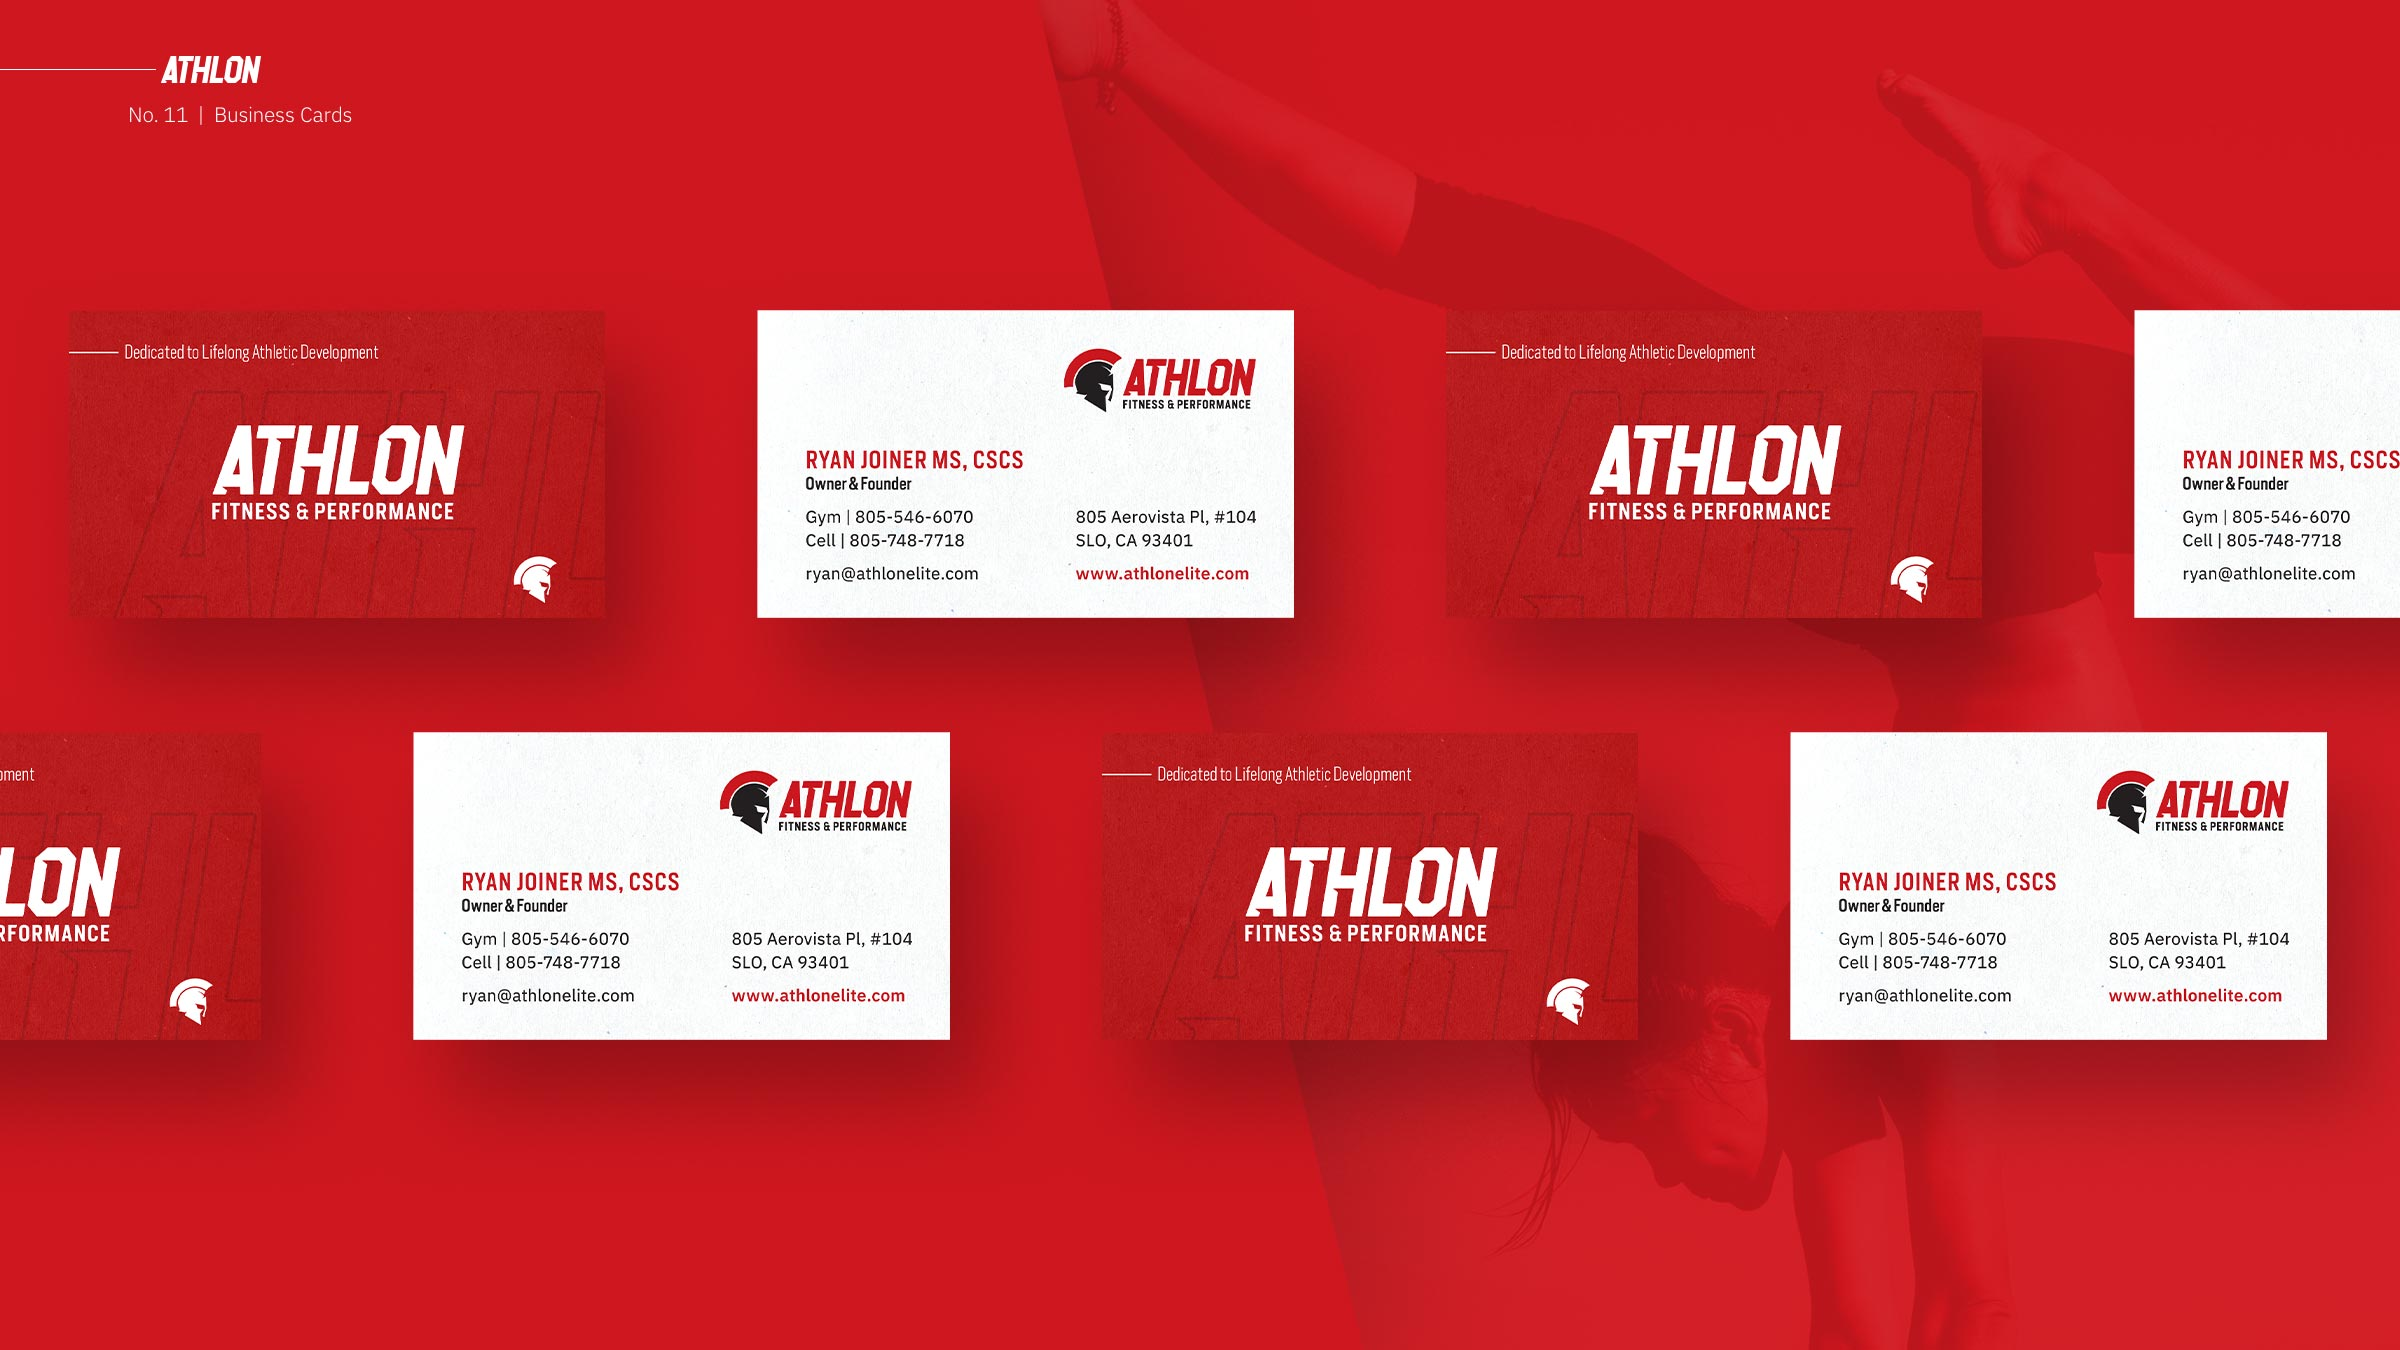 Athlon-Brand-Refresh-11-Business-Cards